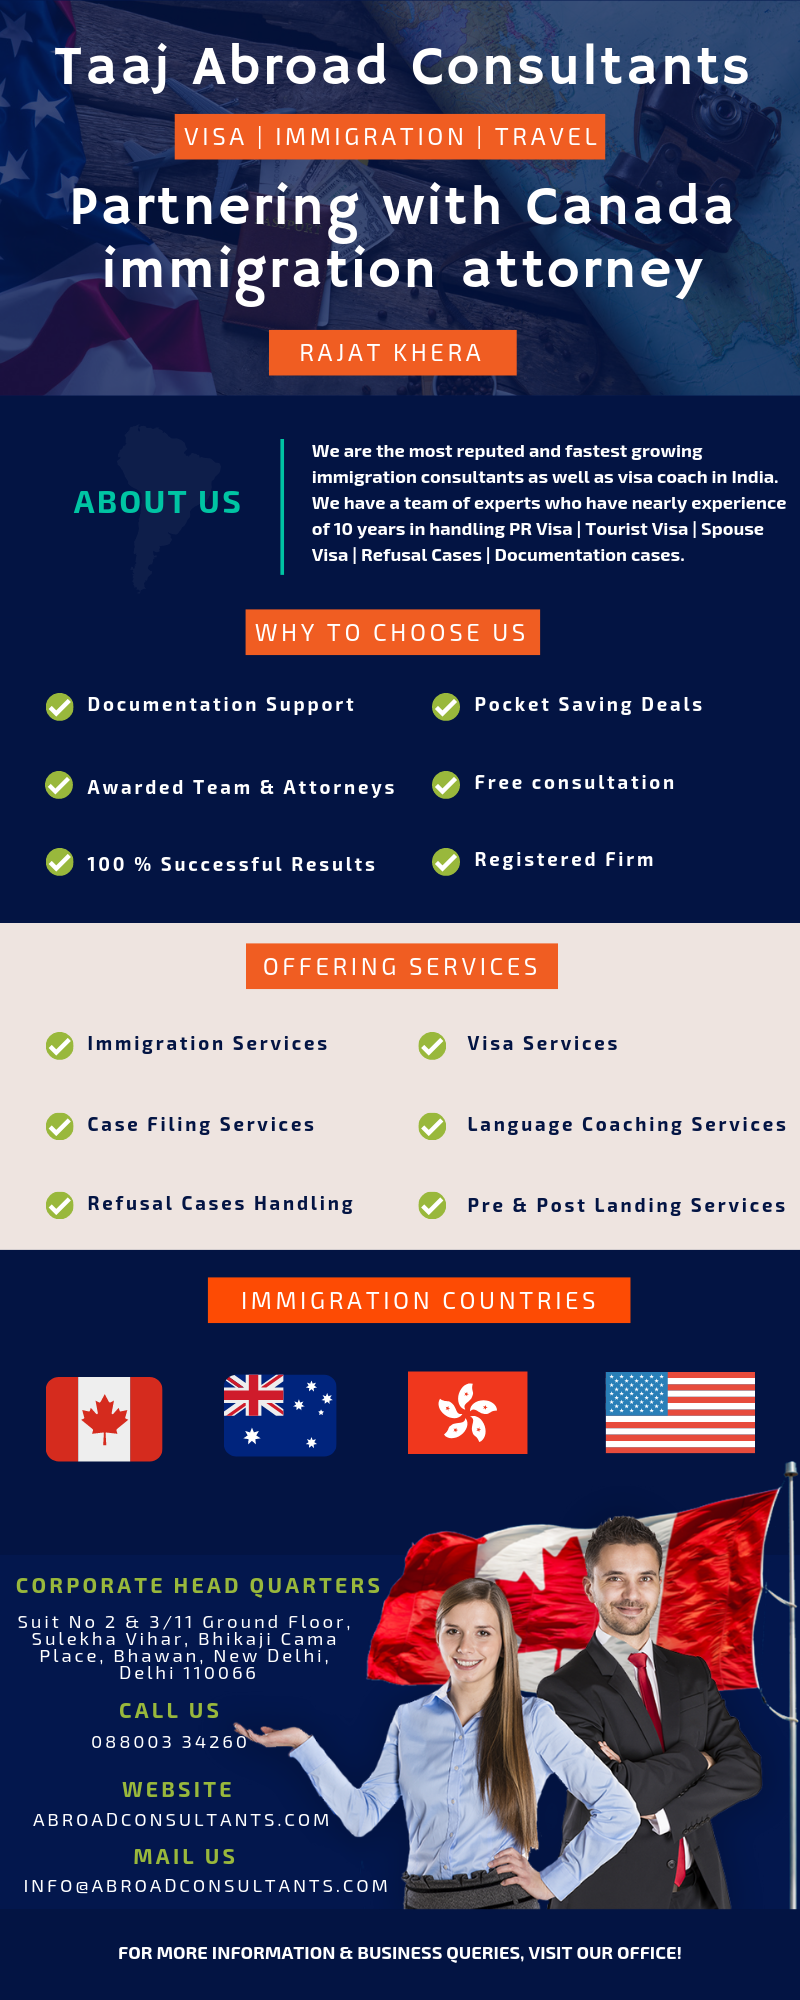 https://abroadconsultants.com/wp-content/uploads/2019/09/Taaj-Abroad-consultants-2.png